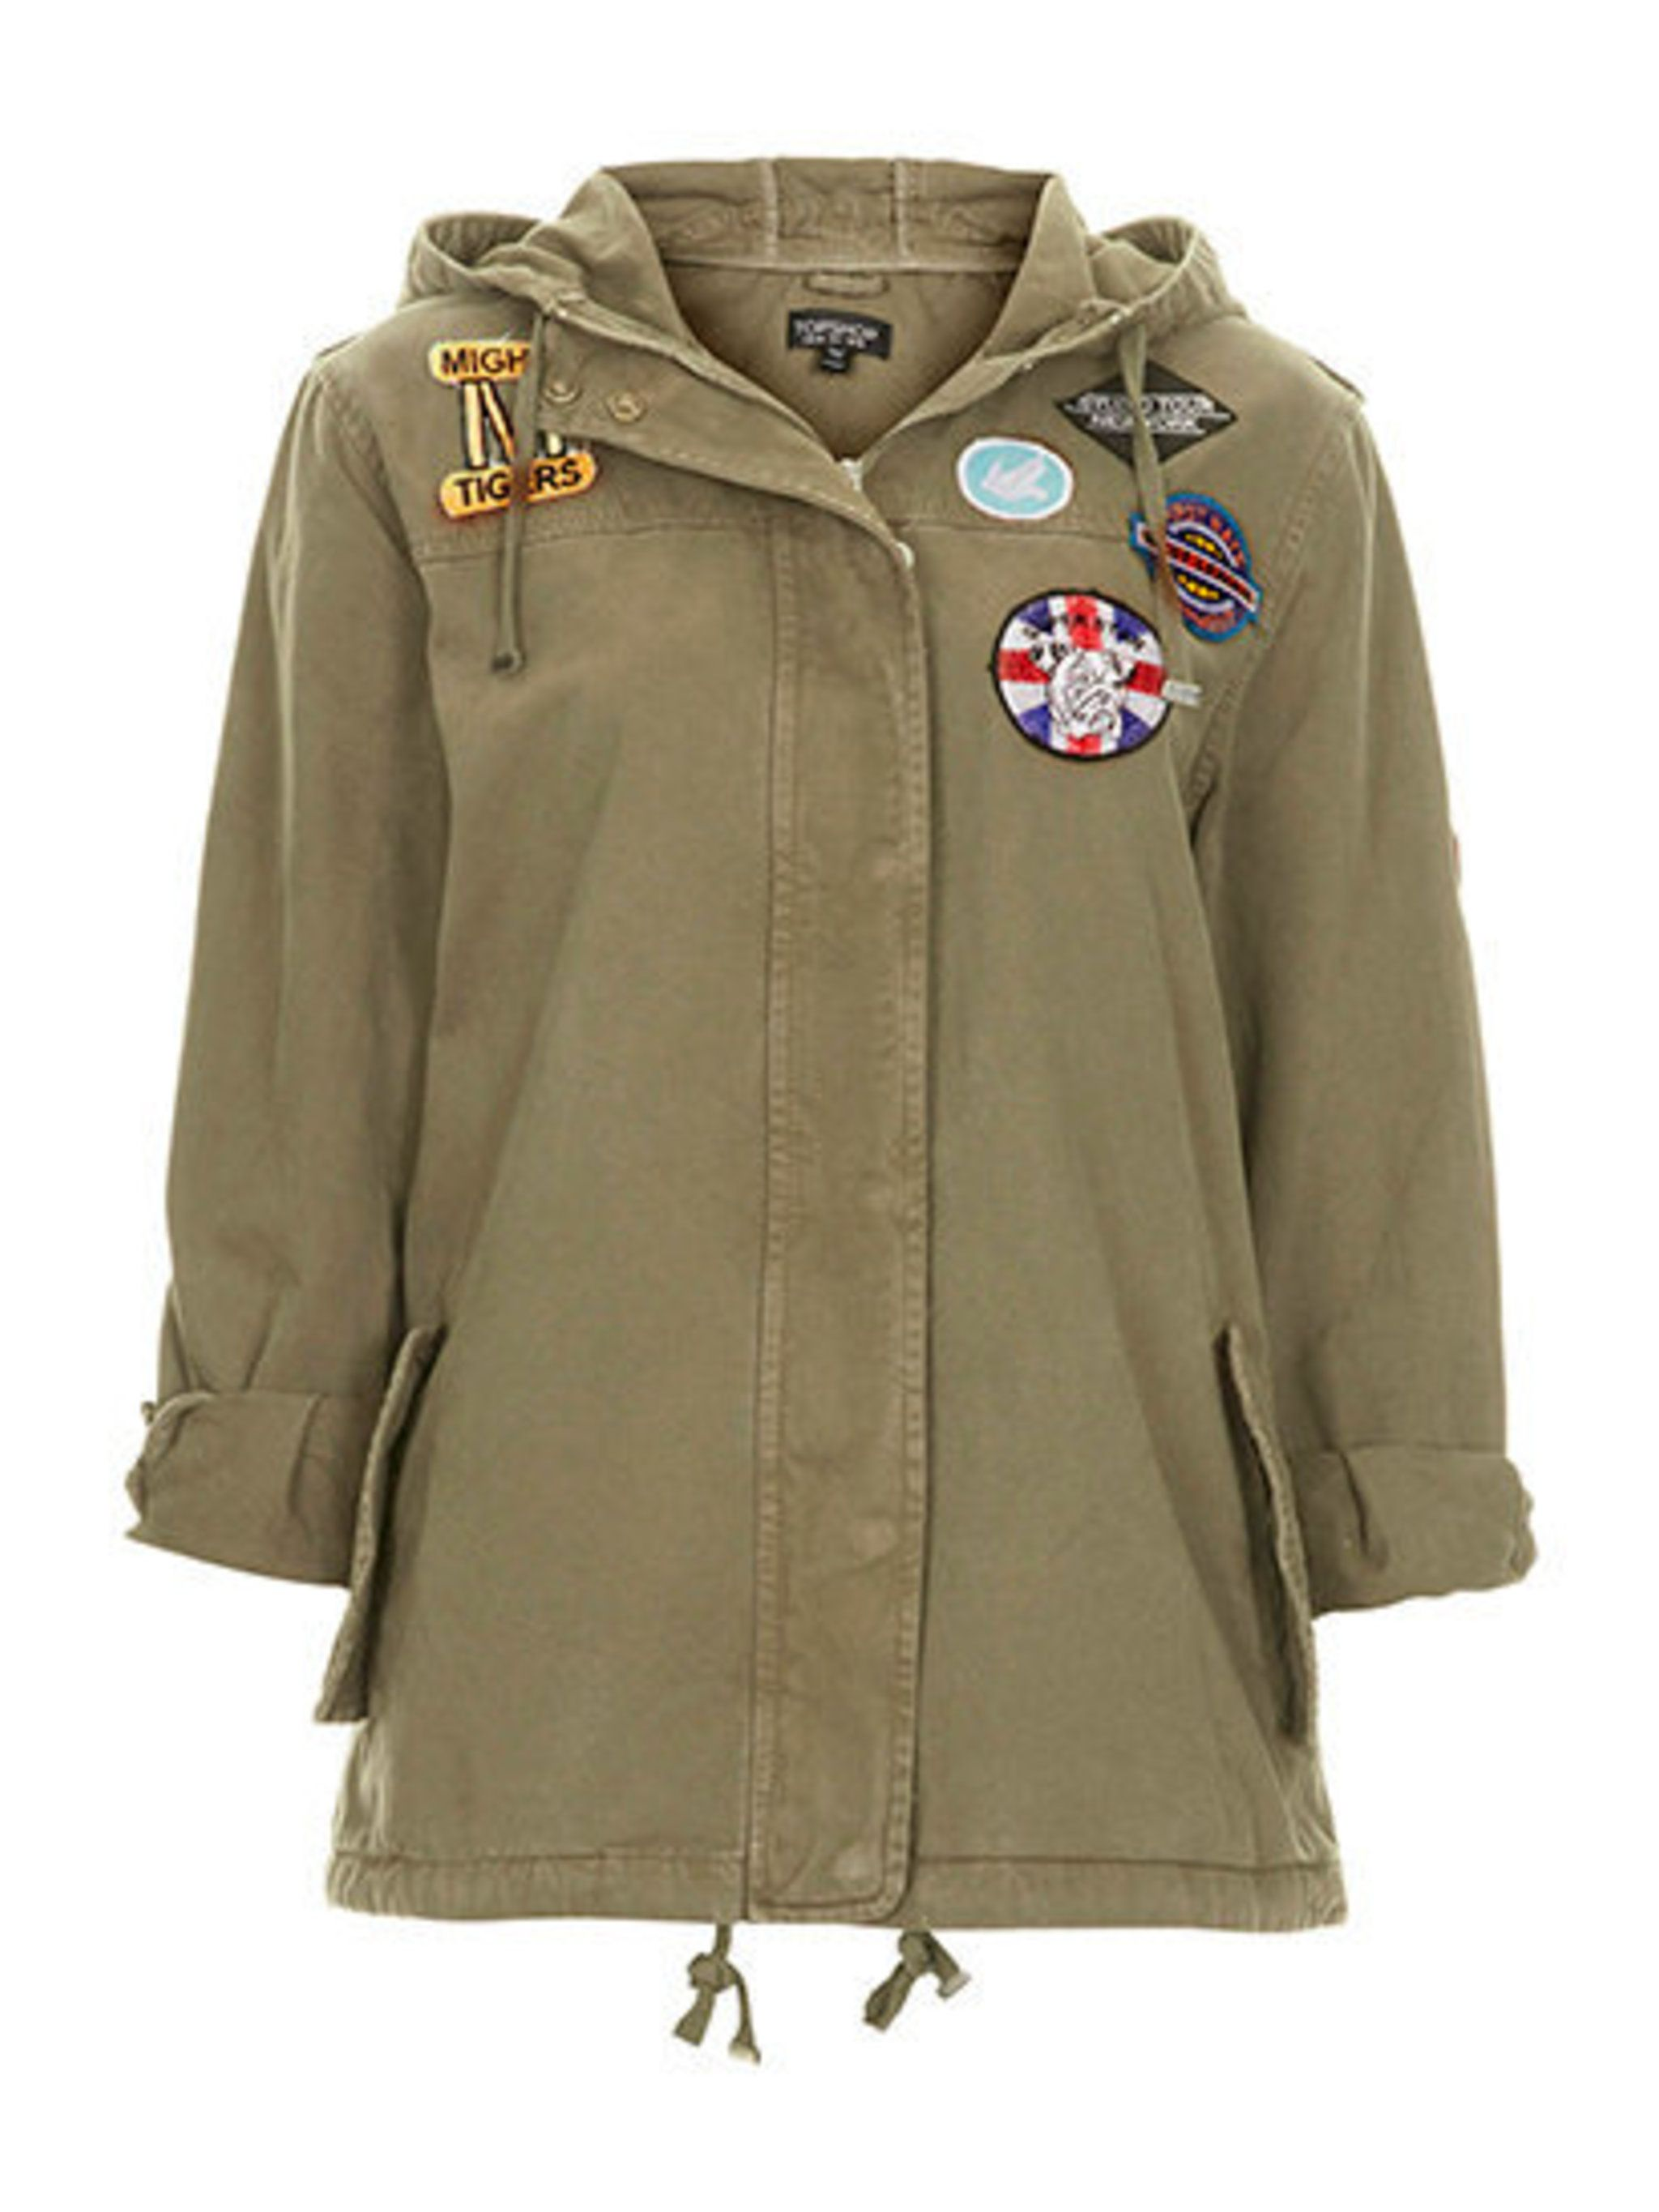 """<p>Lightweight layers are key for festivals, you never know when the English weather might dramatically change. Pack this <a href=""""http://www.topshop.com/en/tsuk/product/clothing-427/festival-1905528/badged-lightweight-short-parka-2779889?bi=1&amp&#x3B;ps=200"""""""